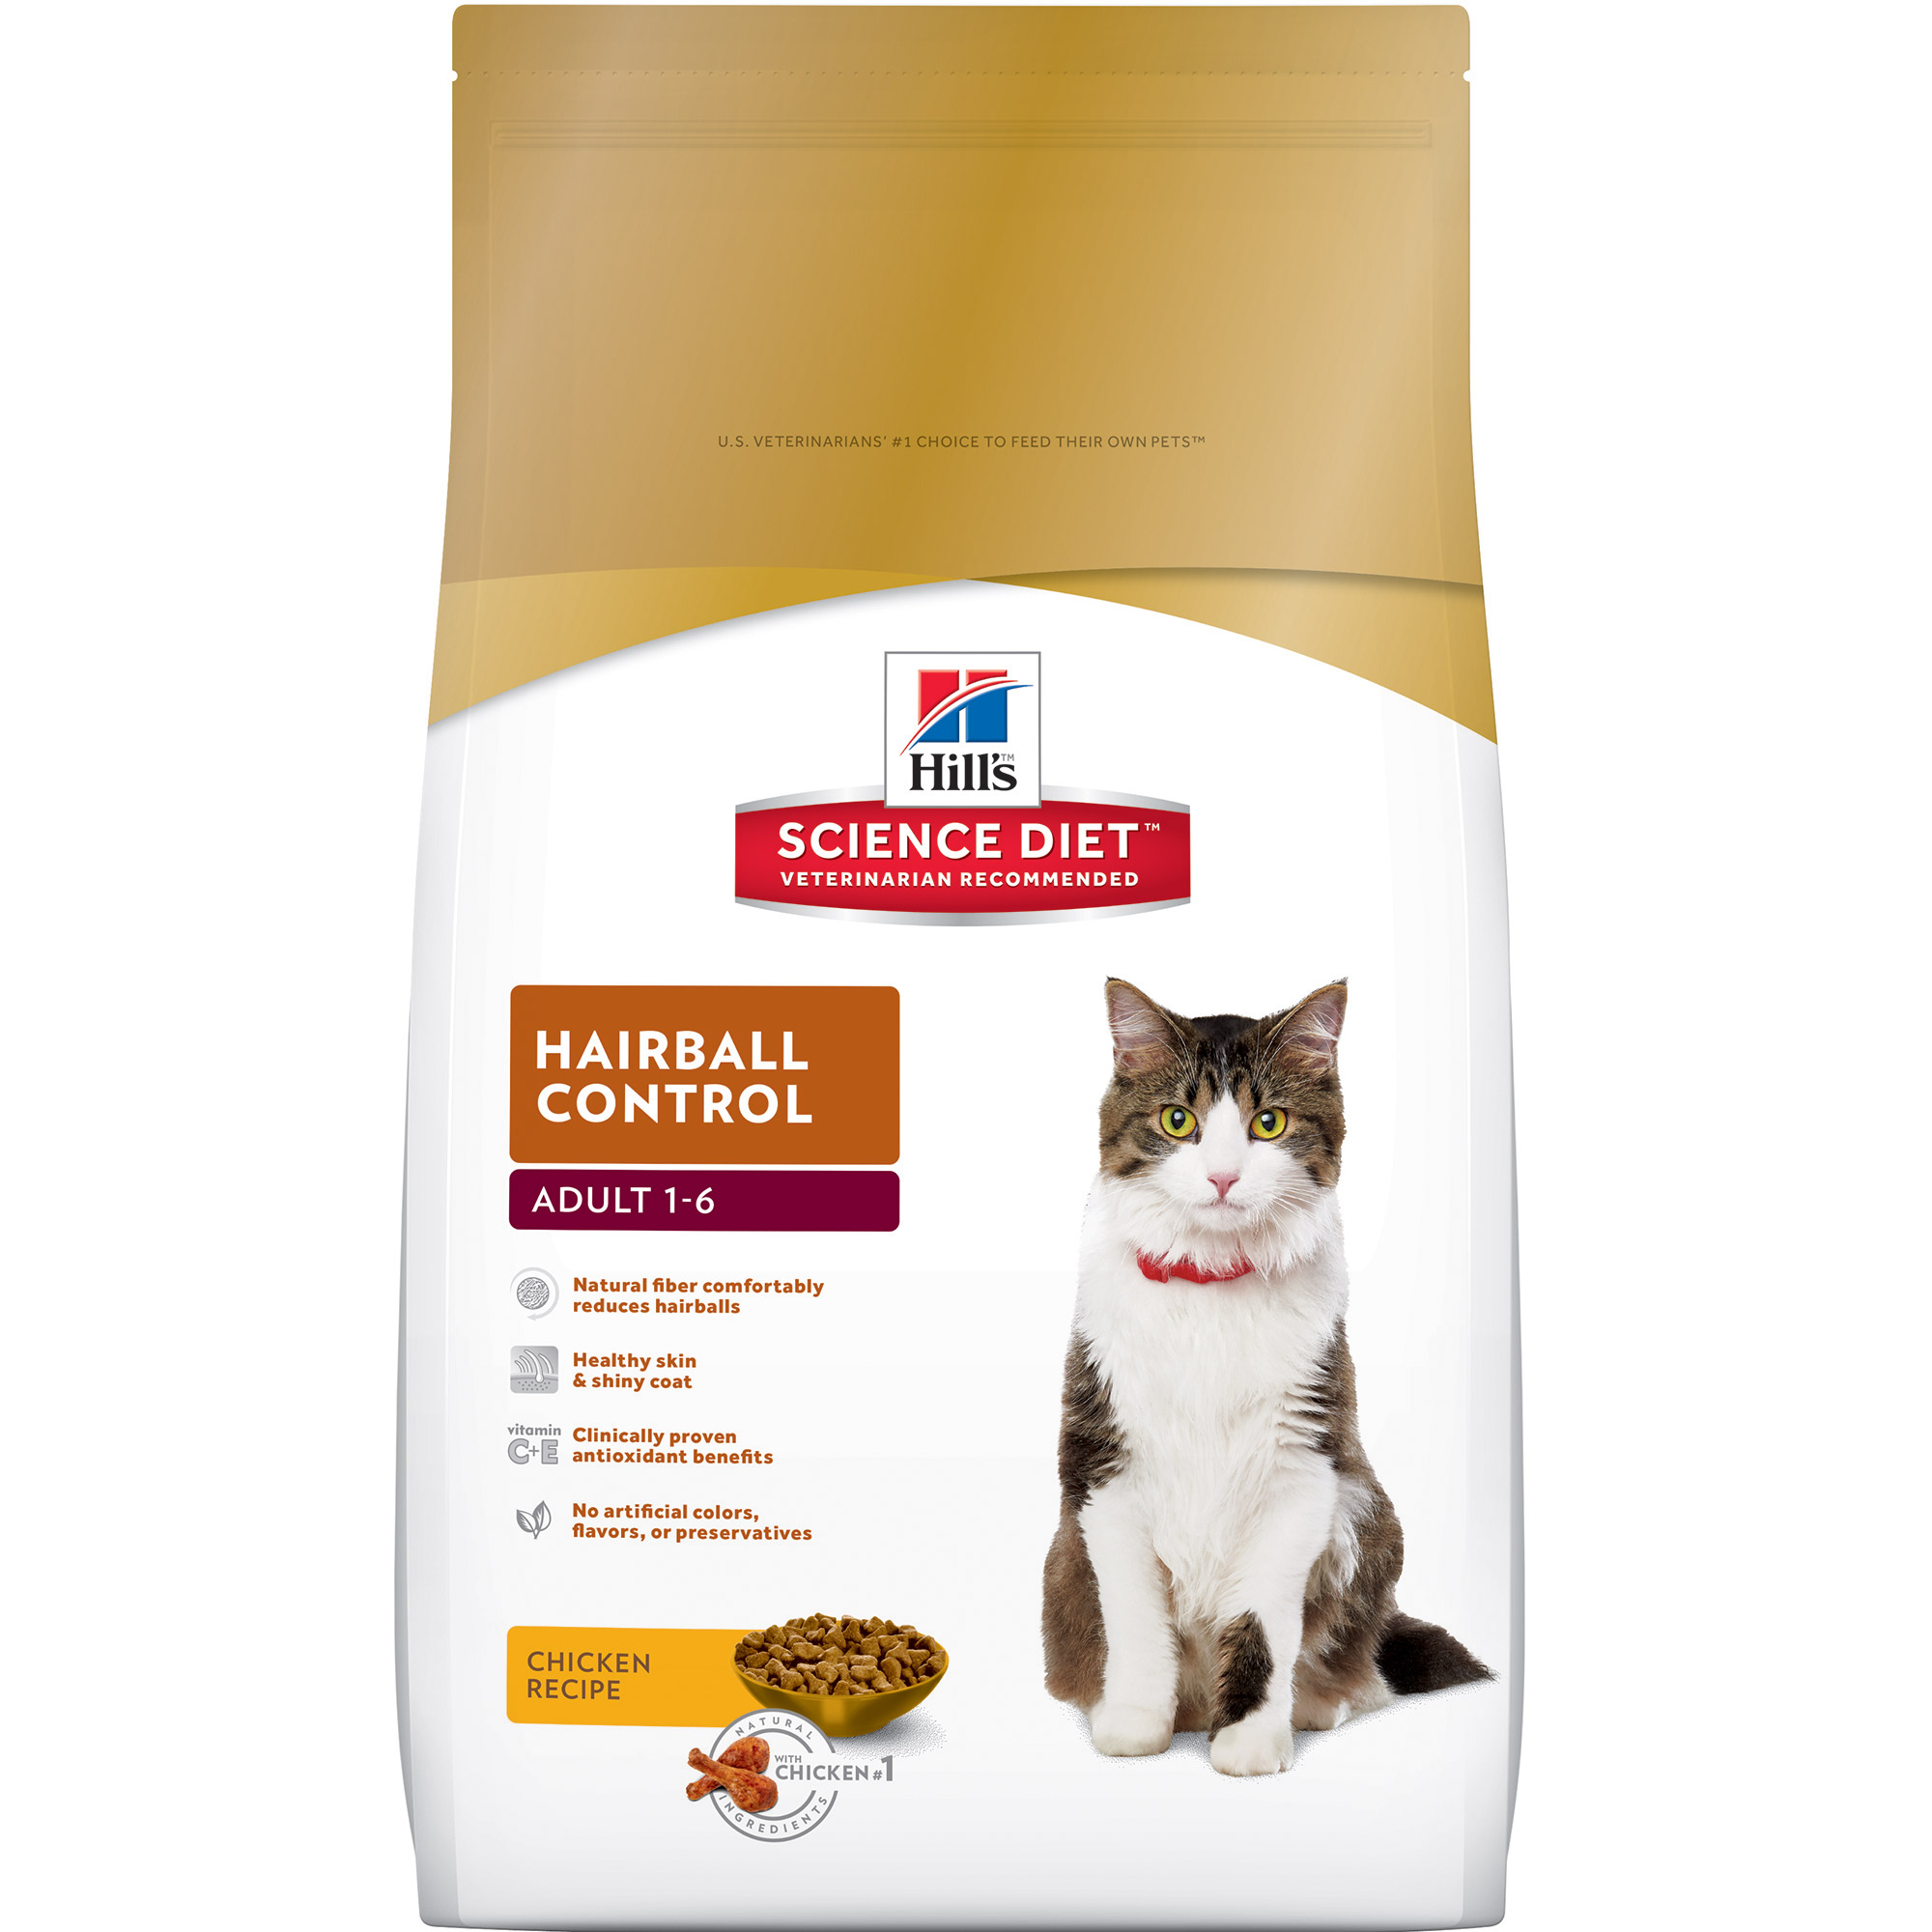 Hill's Science Diet (Spend $20, Get $5) Adult Hairball Control Chicken Dry Cat Food, 15.5 lb bag (See description for rebate details)